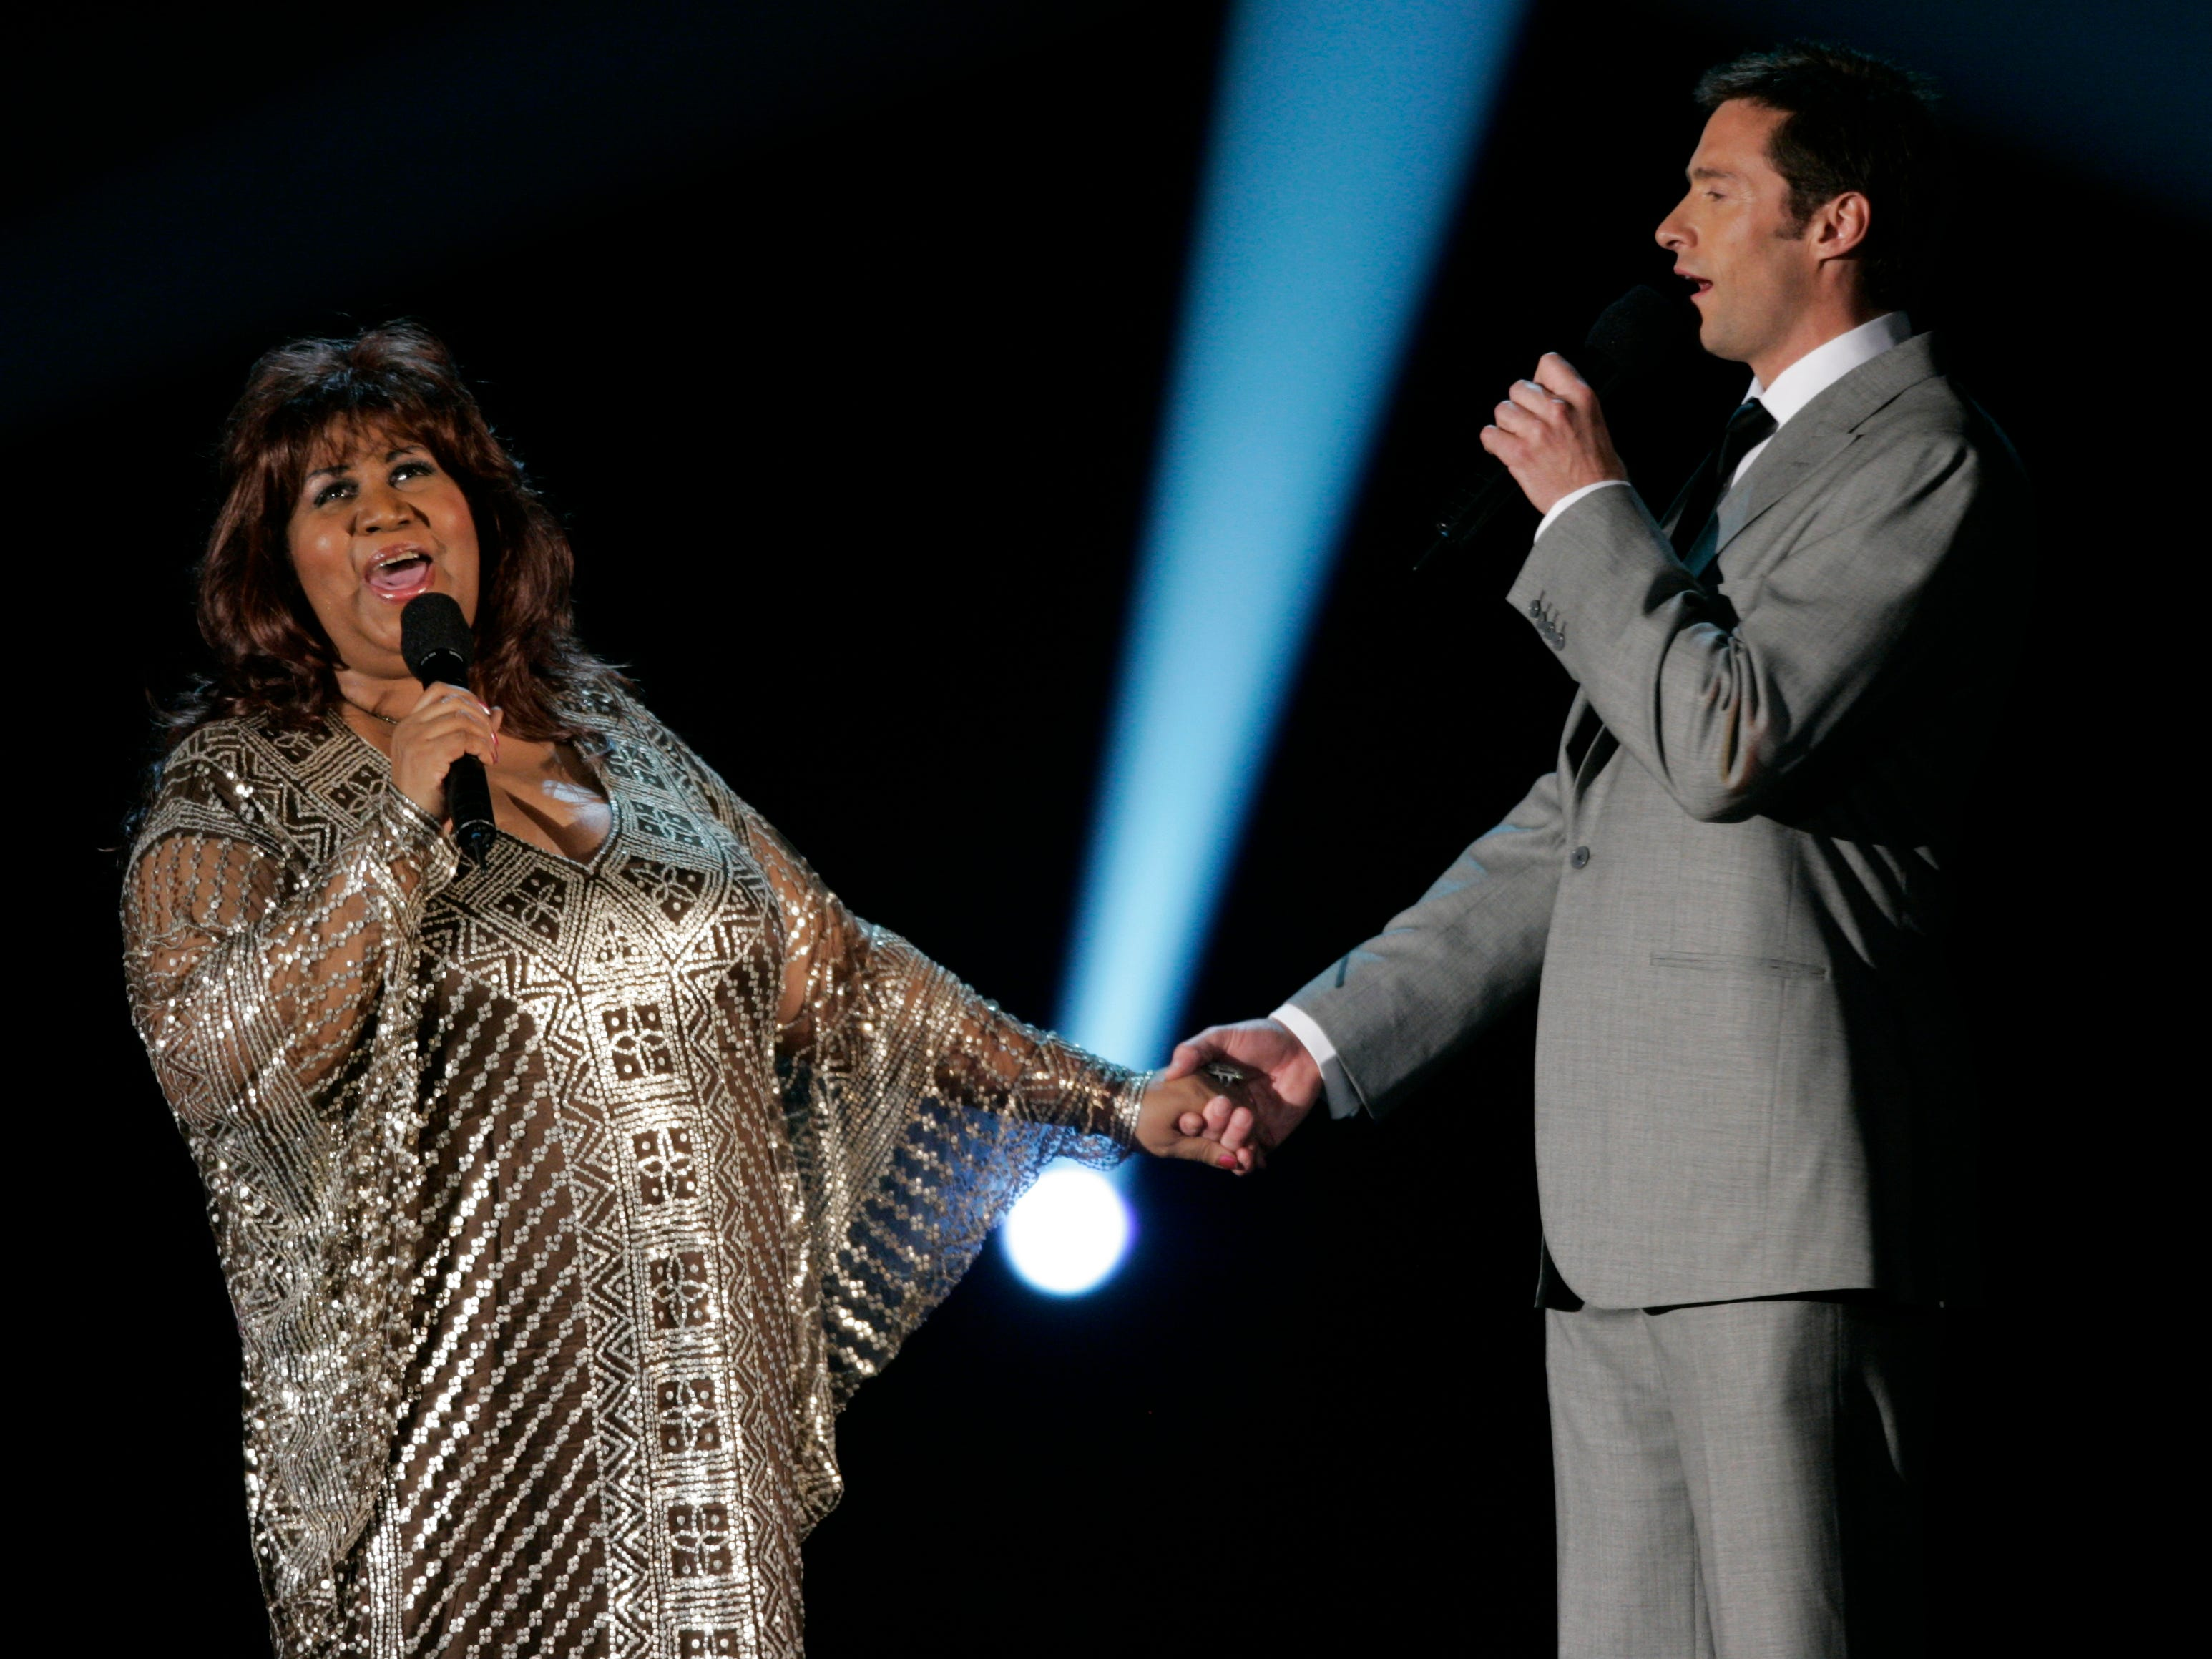 6/5/2005 -- New York, NY -- Aretha Franklin performs with host Hugh Jackman at the 59th annual Tony Awards at Radio City Music Hall. --  Photo by Robert Deutsch, USA TODAY staff (Via MerlinFTP Drop)